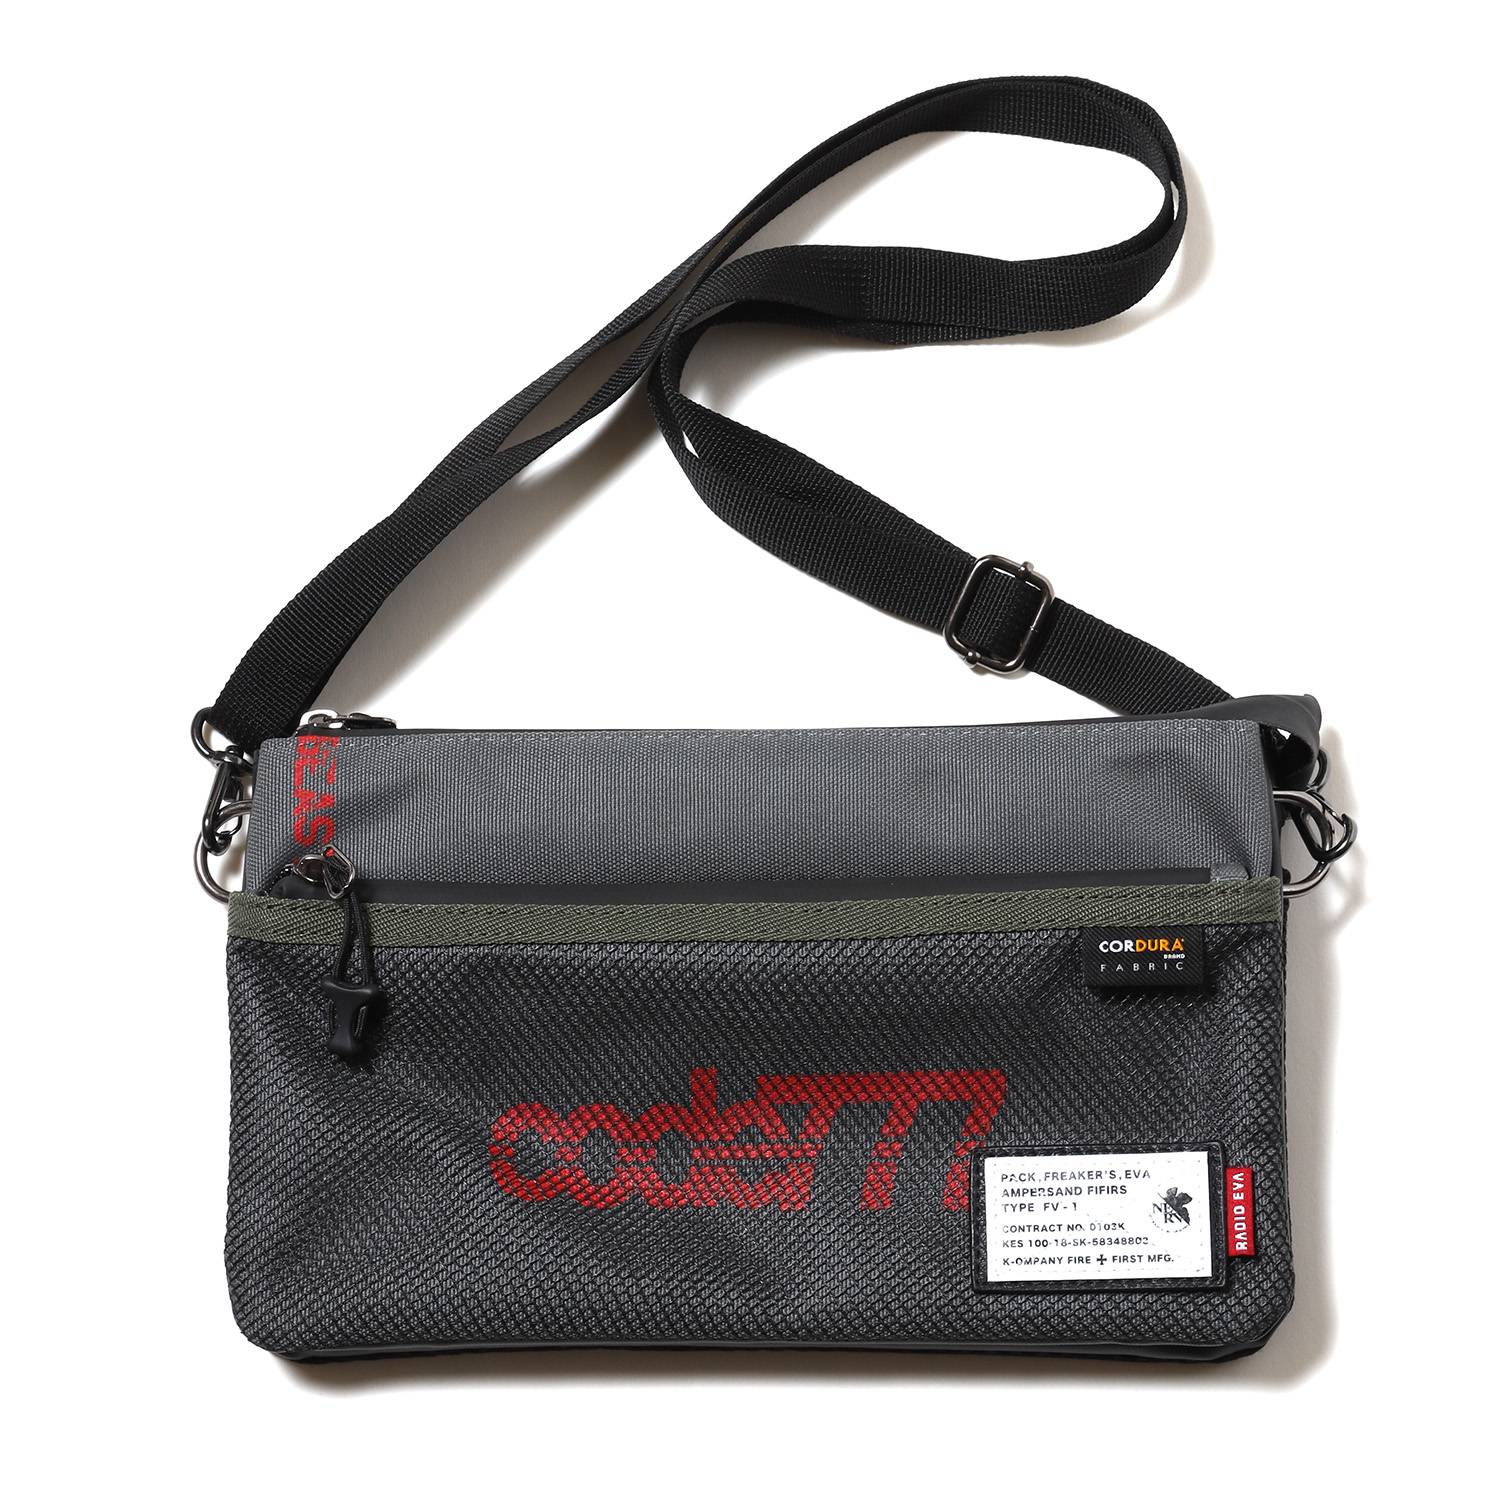 EVANGELION SACOCHE BAG by FIRE FIRST (THE BEAST MODEL)